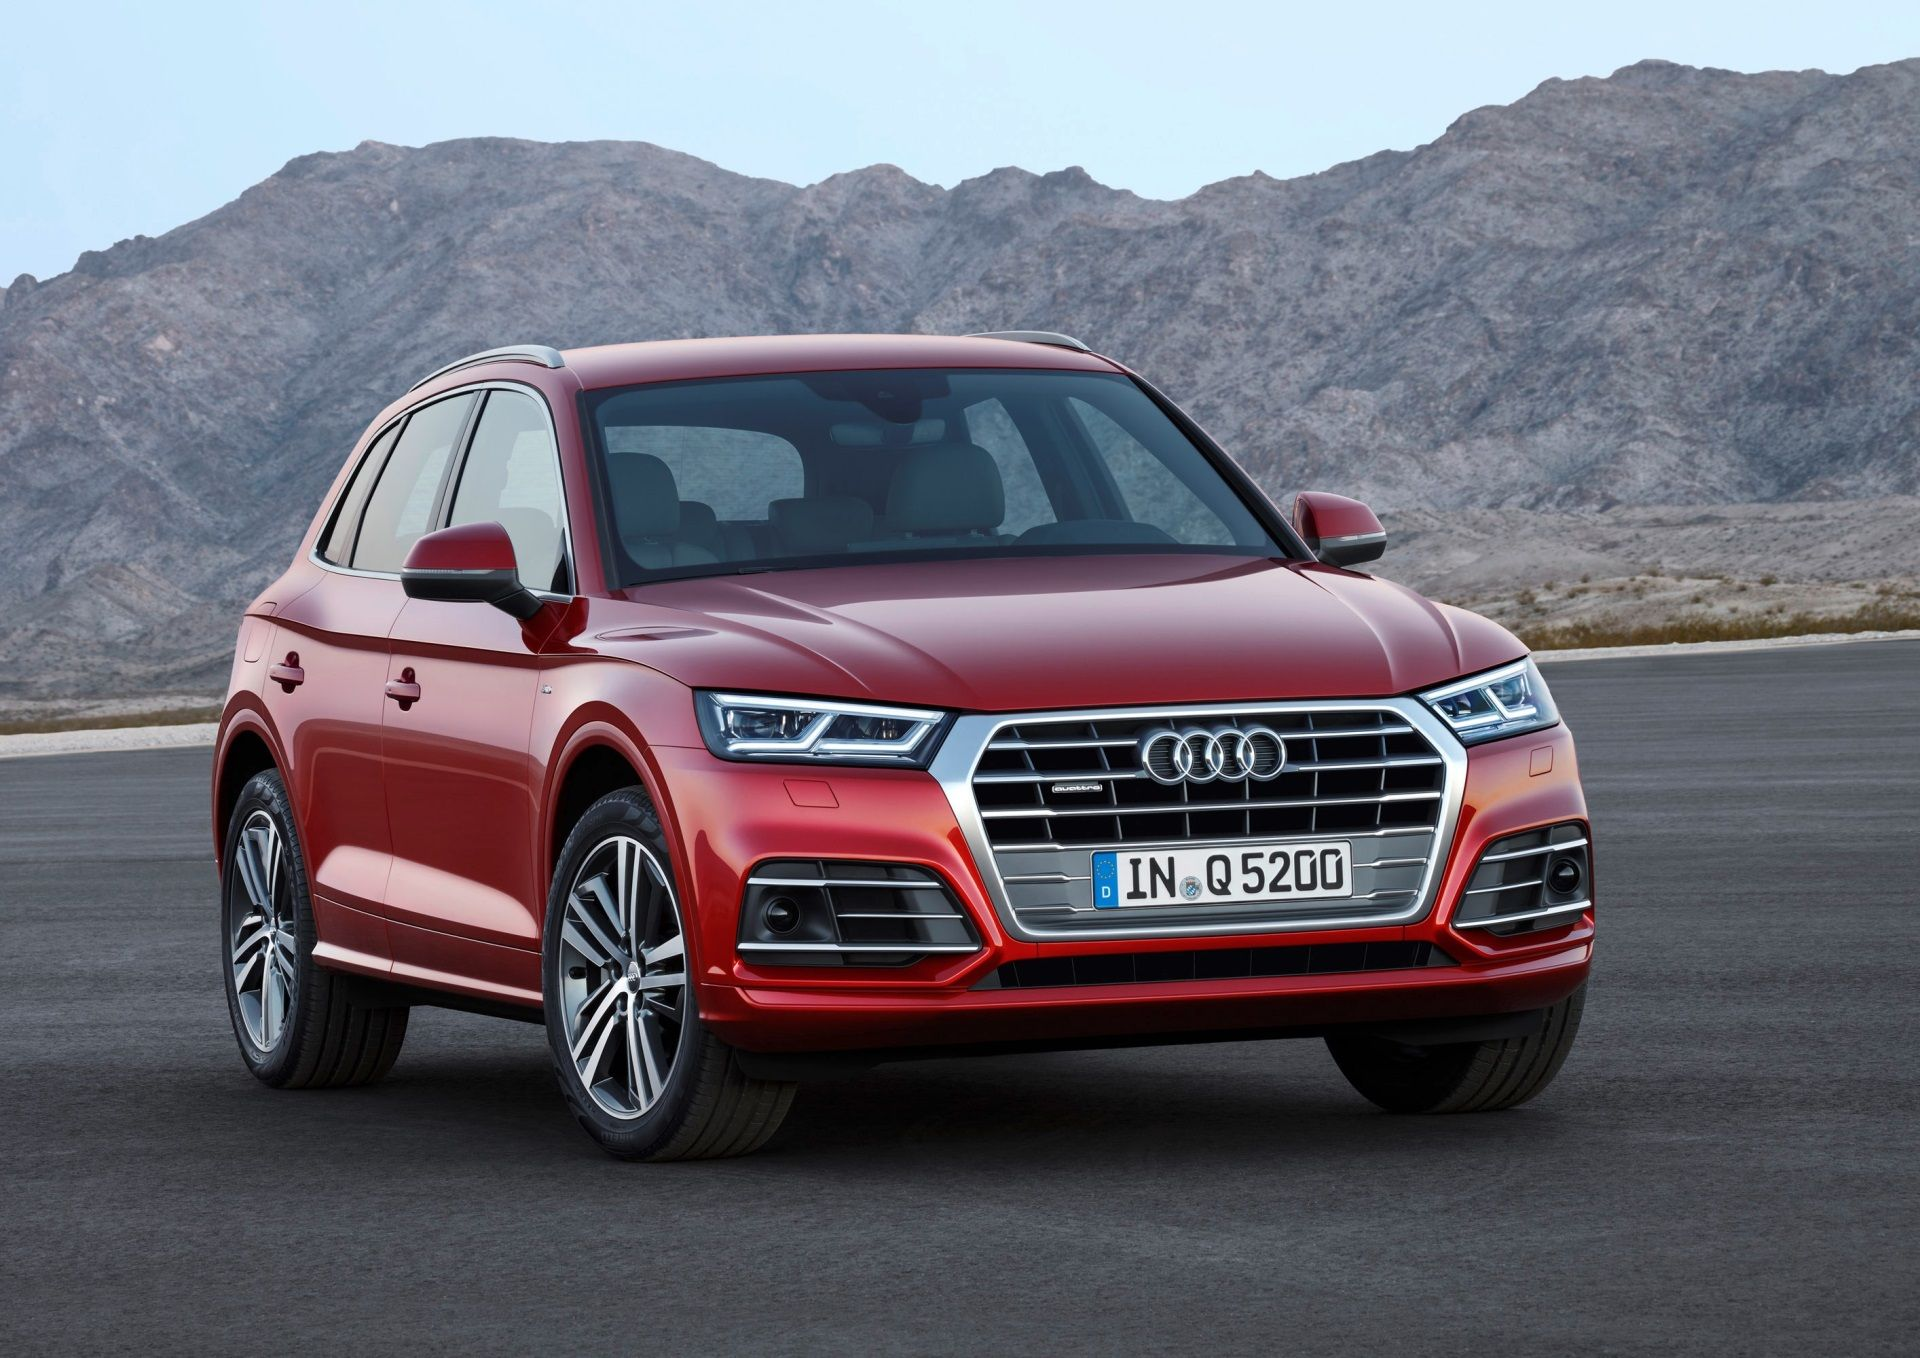 1920x1358 Audi Q5 Wallpaper Pc Full Hd Red Audi Audi Q5 Audi